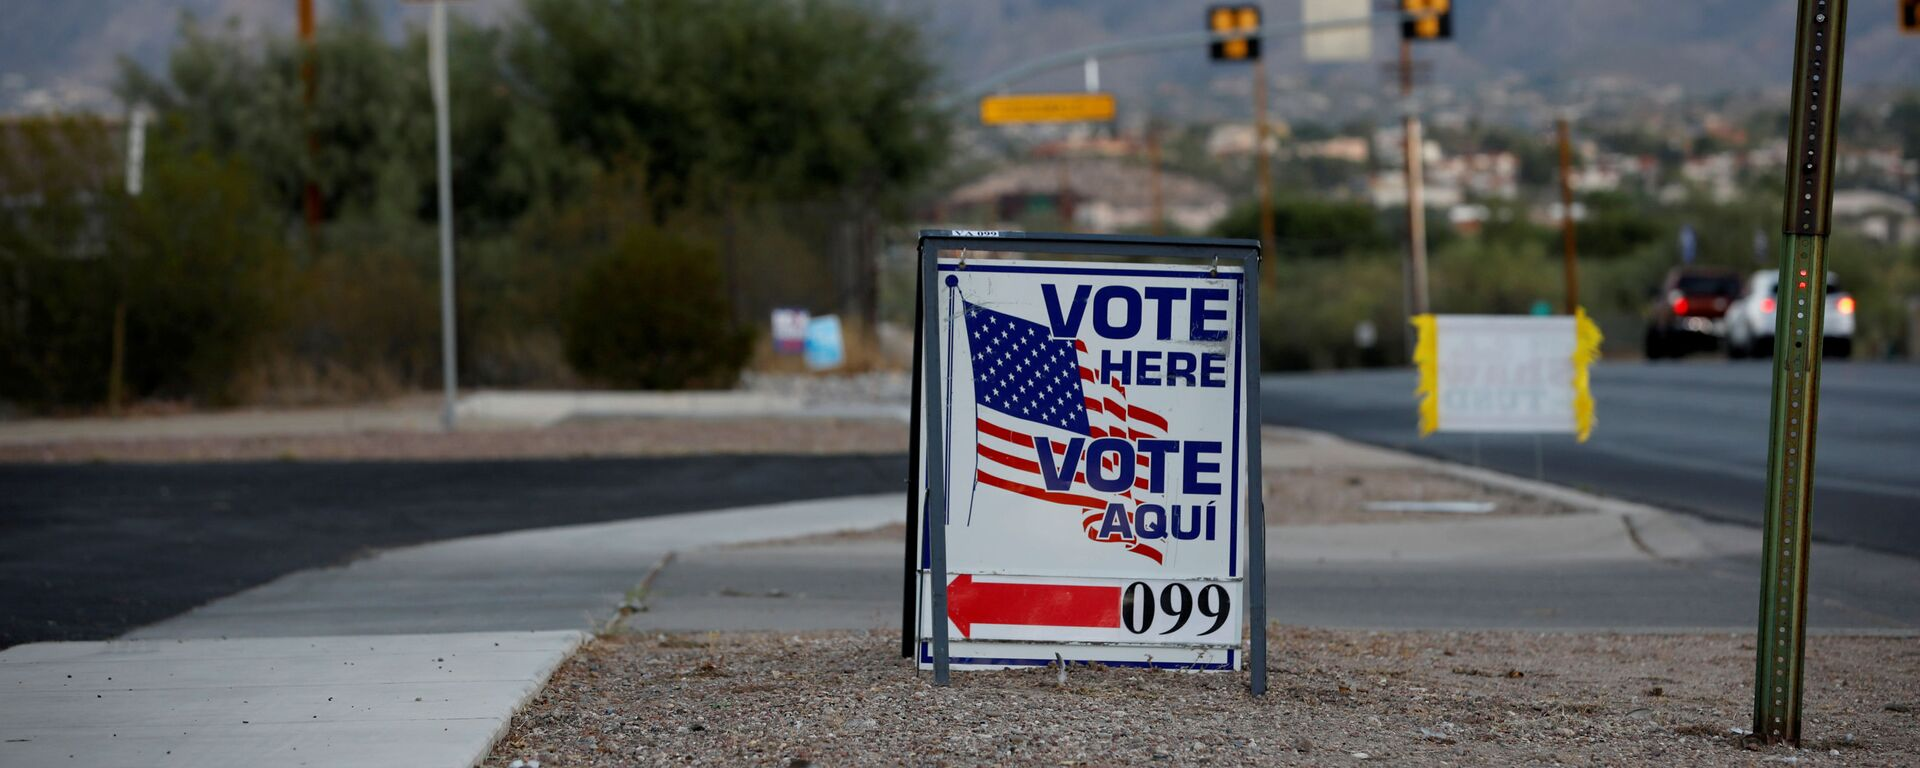 Sign directs voters to a polling station on Election Day in Tucson, Arizona, U.S. November 3, 2020 - Sputnik International, 1920, 07.10.2021